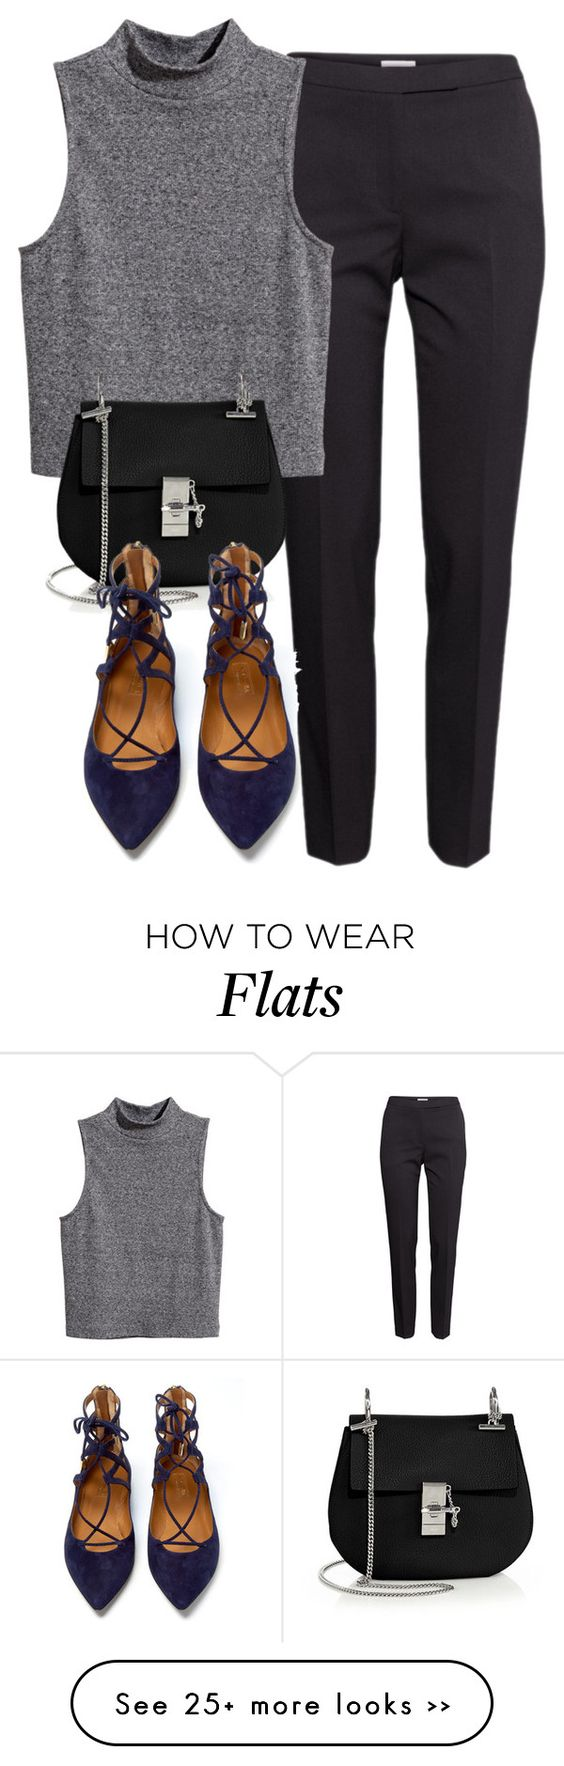 """""""Sin título #1897"""" by marianam97 on Polyvore featuring H&M, Chloé and Aquazzura"""